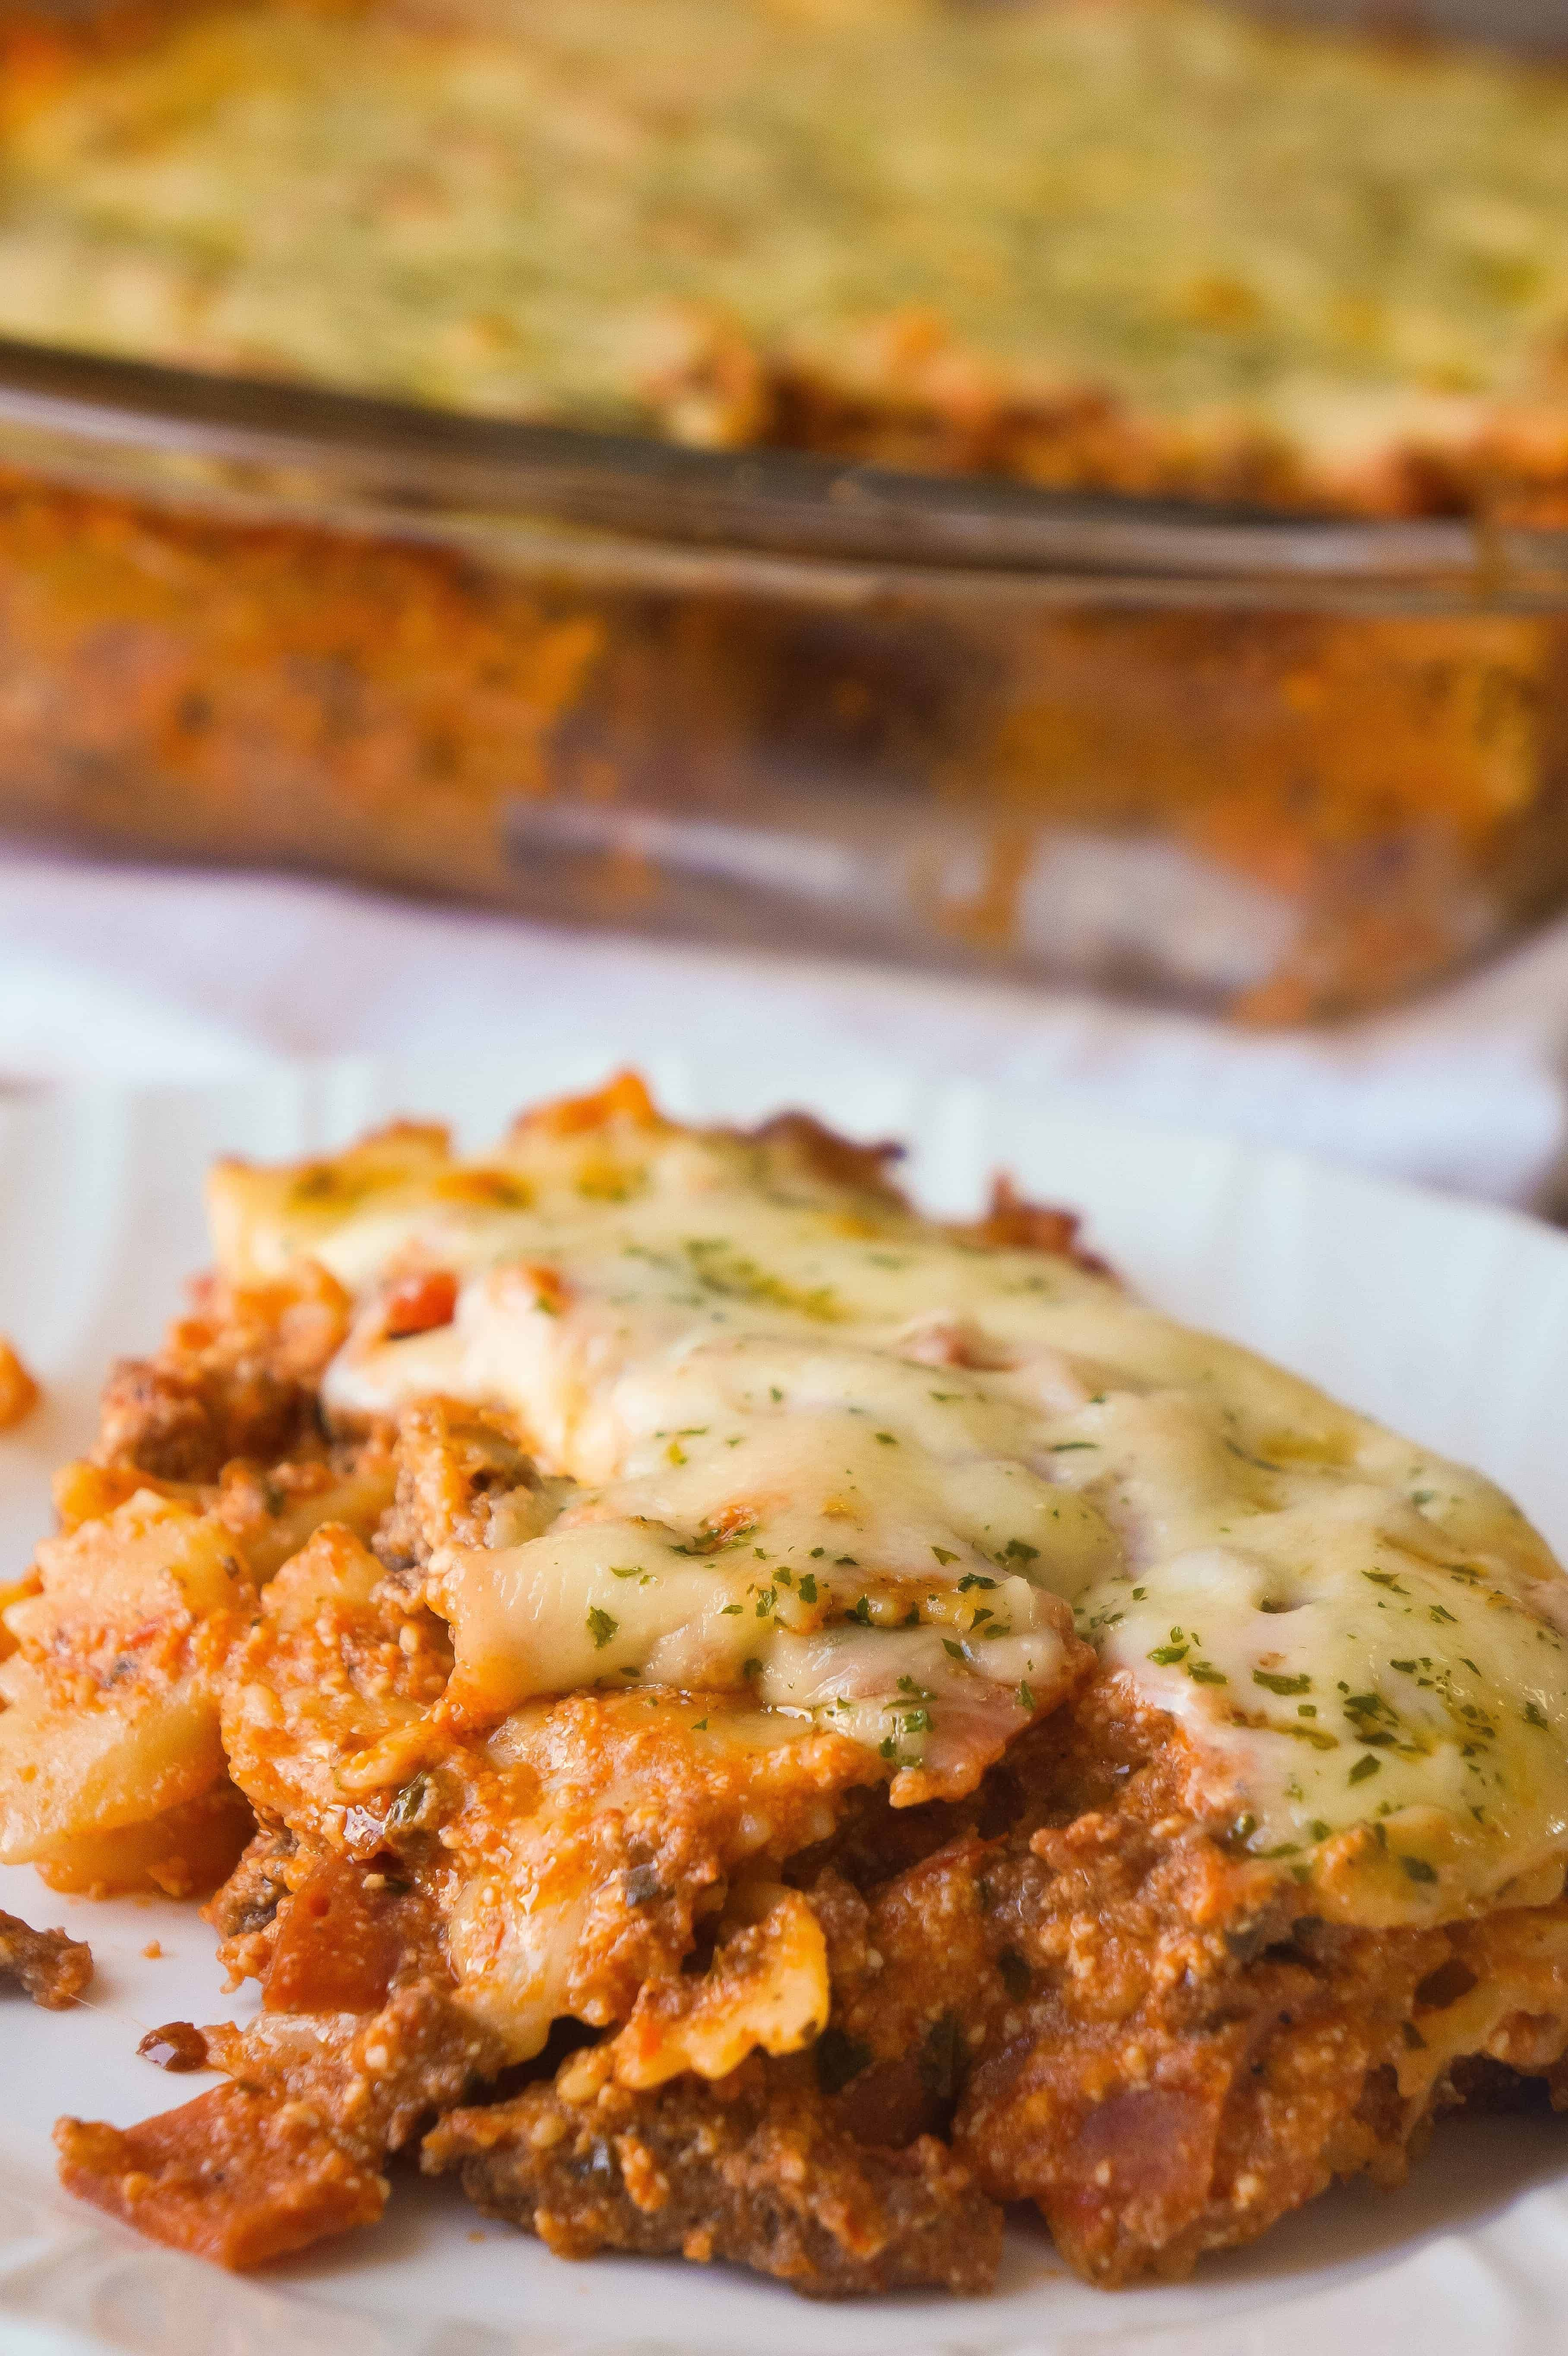 Three Meat Lasagna Casserole Is An Easy Dinner Recipe Loaded With Ground Beef Pepperoni Bacon And Cheese Th Meat Lasagna Lasagna Casserole Easy Pasta Dinner